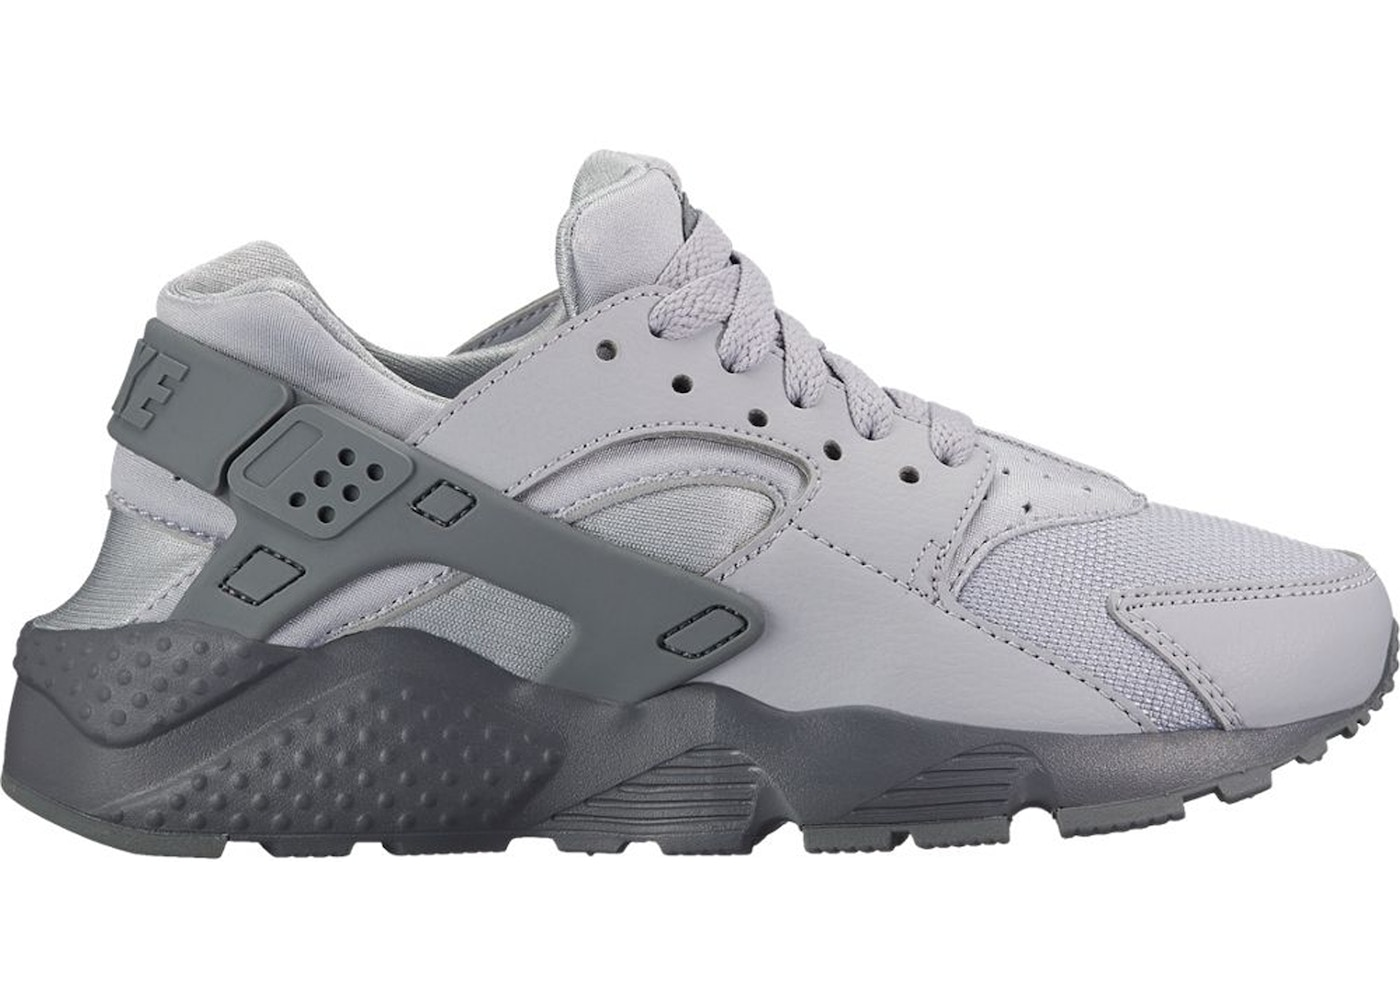 half off c2e84 3a610 Air Huarache Run Wolf Grey Cool Grey (GS) - 654275-032